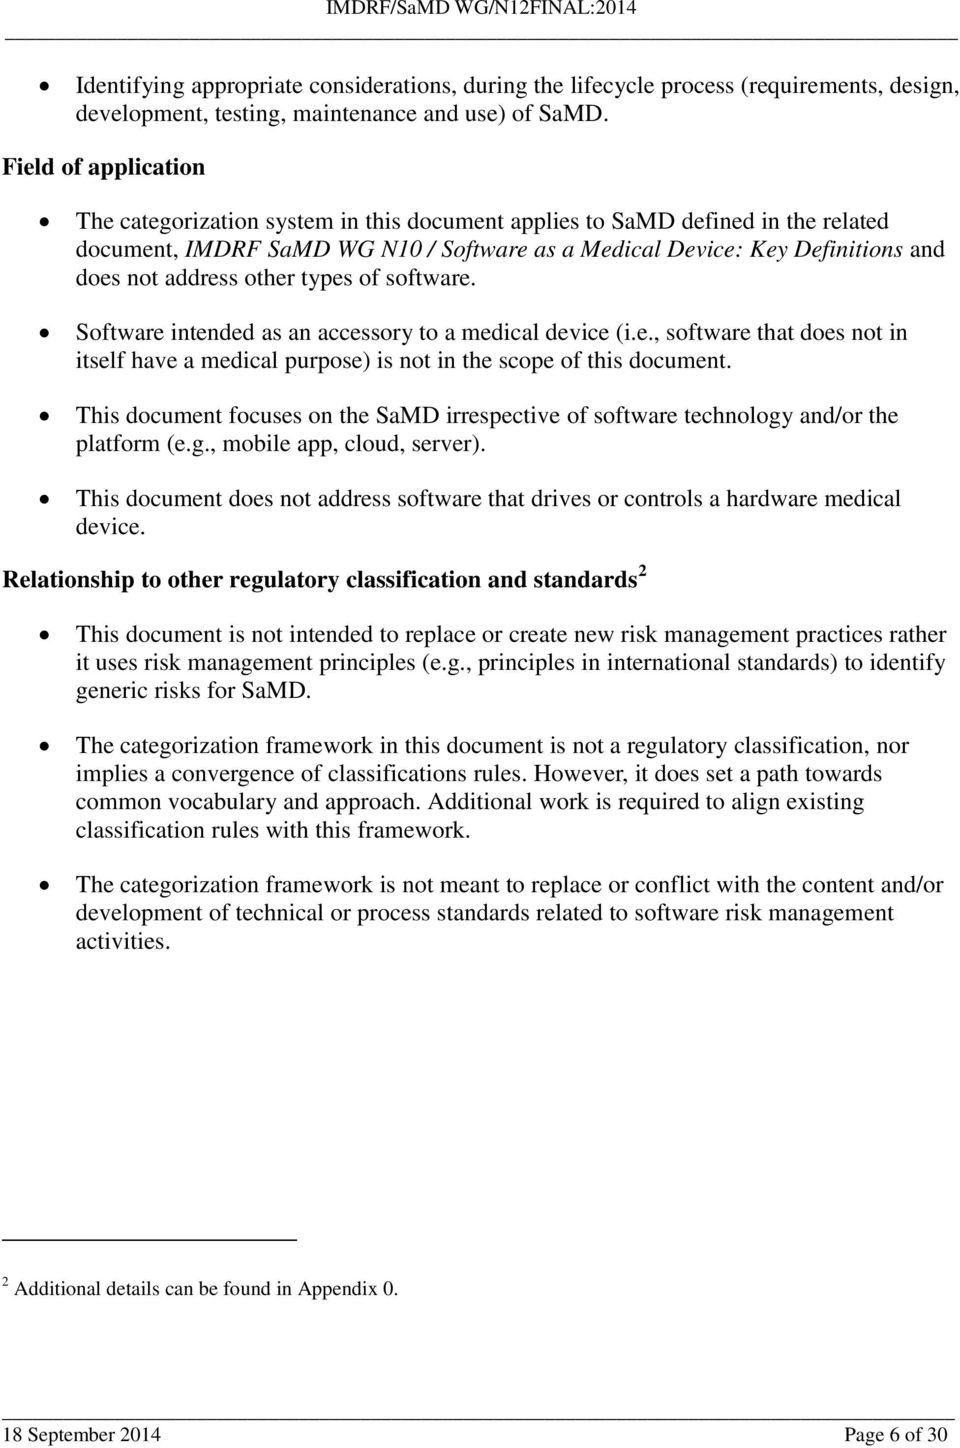 other types of software. Software intended as an accessory to a medical device (i.e., software that does not in itself have a medical purpose) is not in the scope of this document.